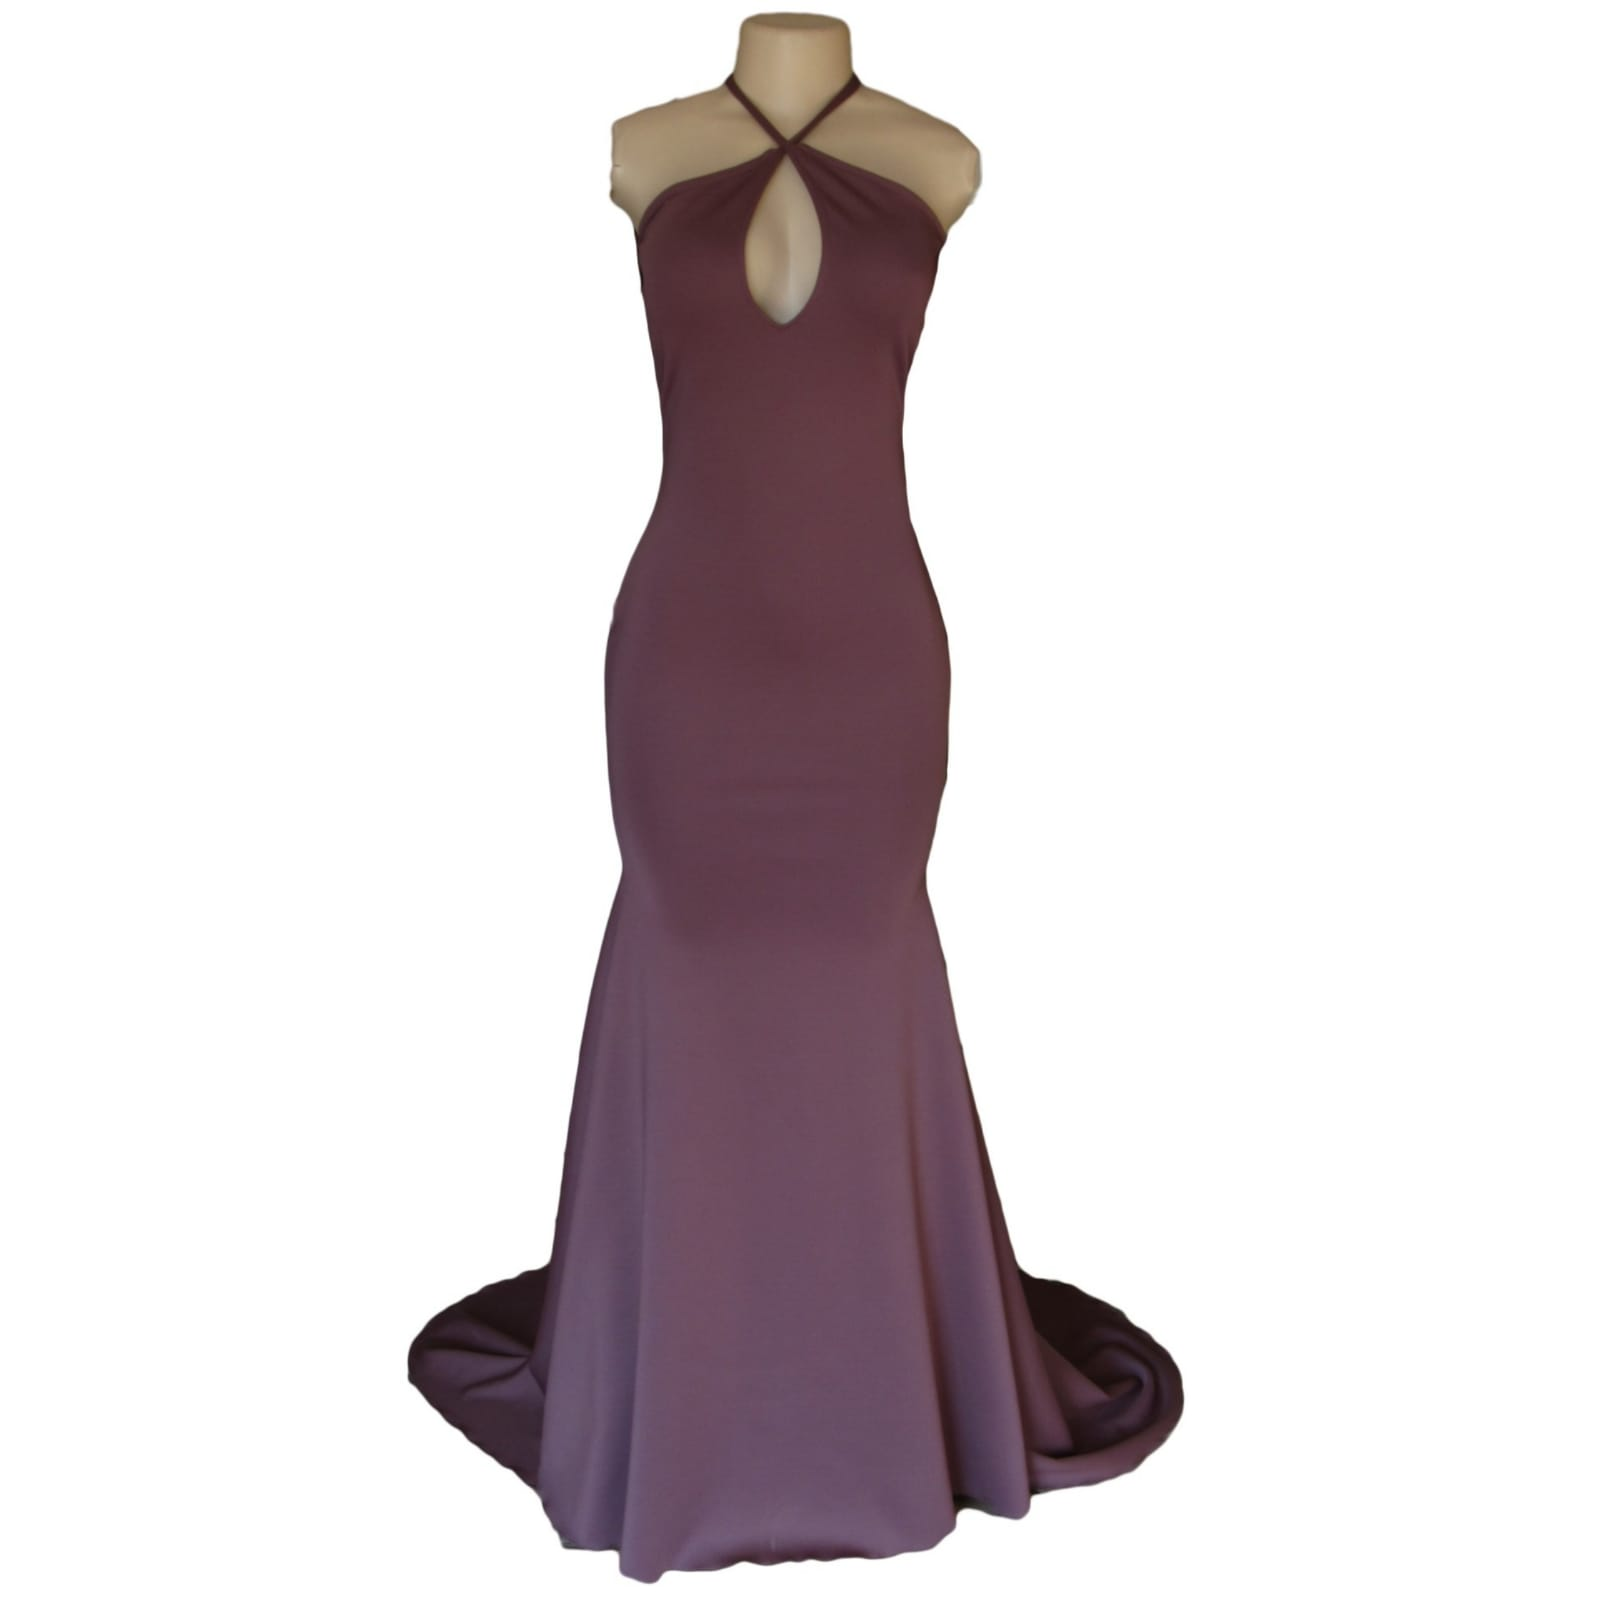 Mauve soft mermaid prom dress 6 mauve soft mermaid prom dress with a low open pleated back with cross strap with a train and a teardrop cleavage opening.